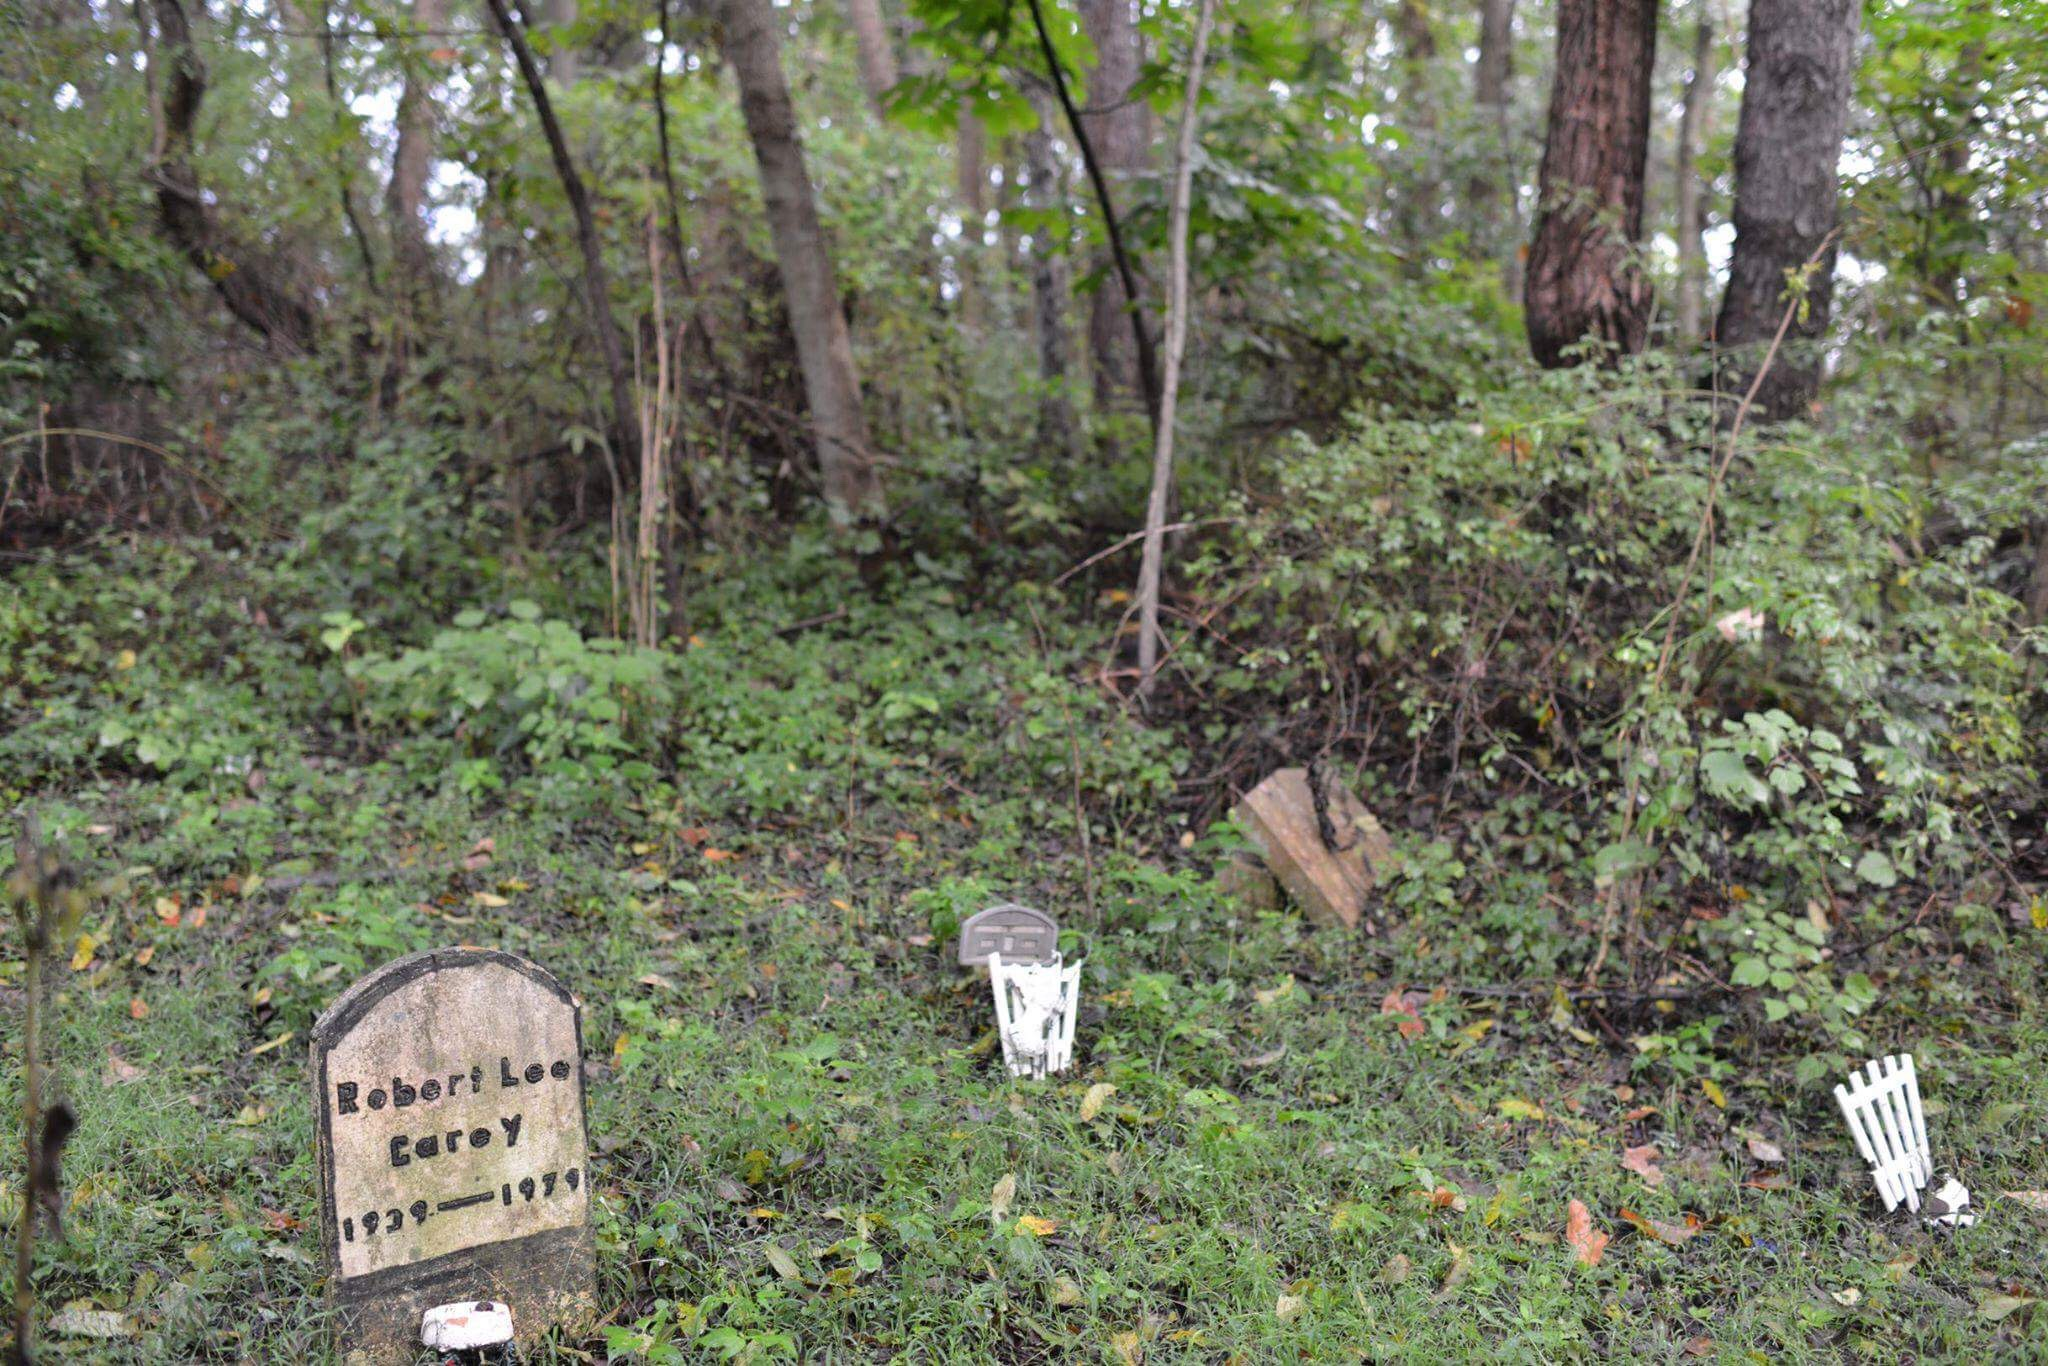 Many of the grave markers are in wooded areas like this one